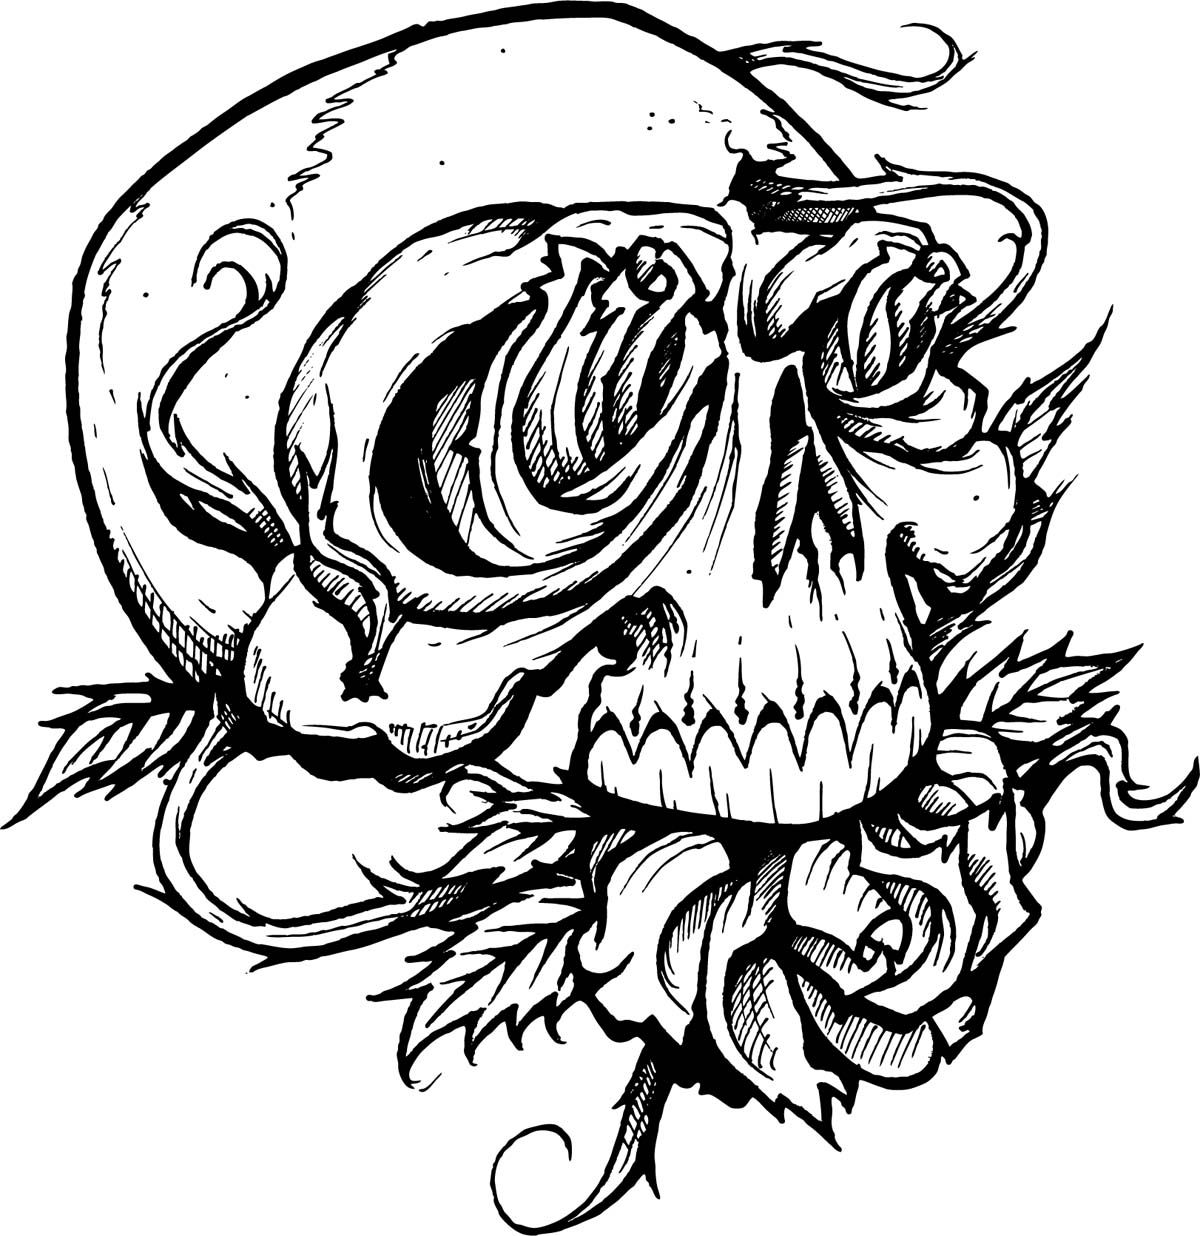 printable tattoo design coloring pages cool design shapes and patterns for body art or artistic - Body Art Tattoo Designs Coloring Book